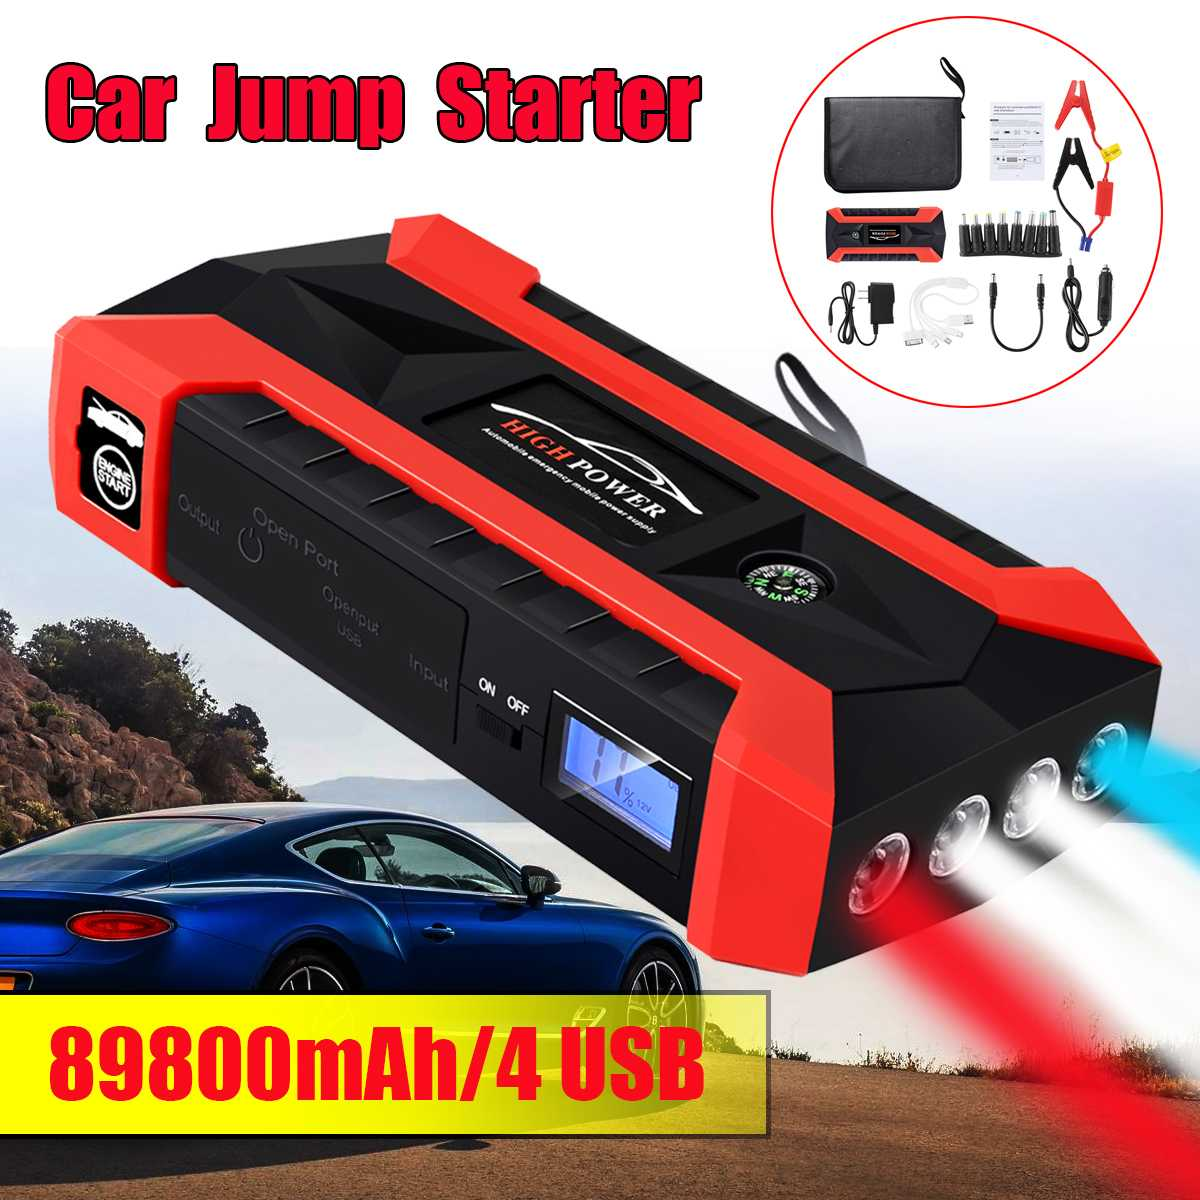 89800mAh 4USB Car Jump Starter Multifunction Emergency Charger Battery Power Bank Pack Booster 12V Starting Device